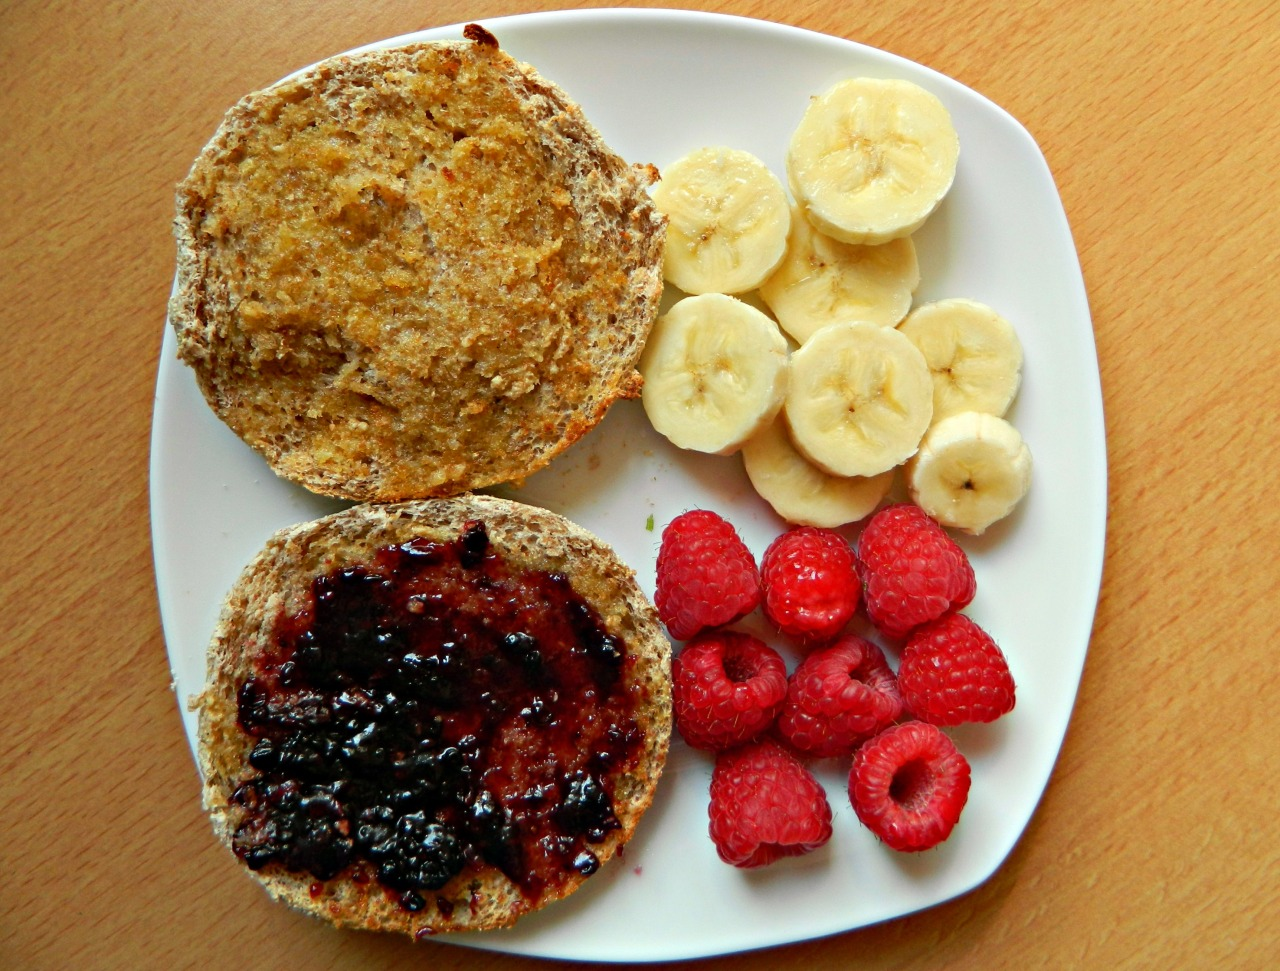 Breakfast - wholegrain English muffin, half with soya butter, half with blackberry jam, banana slices and raspberries.